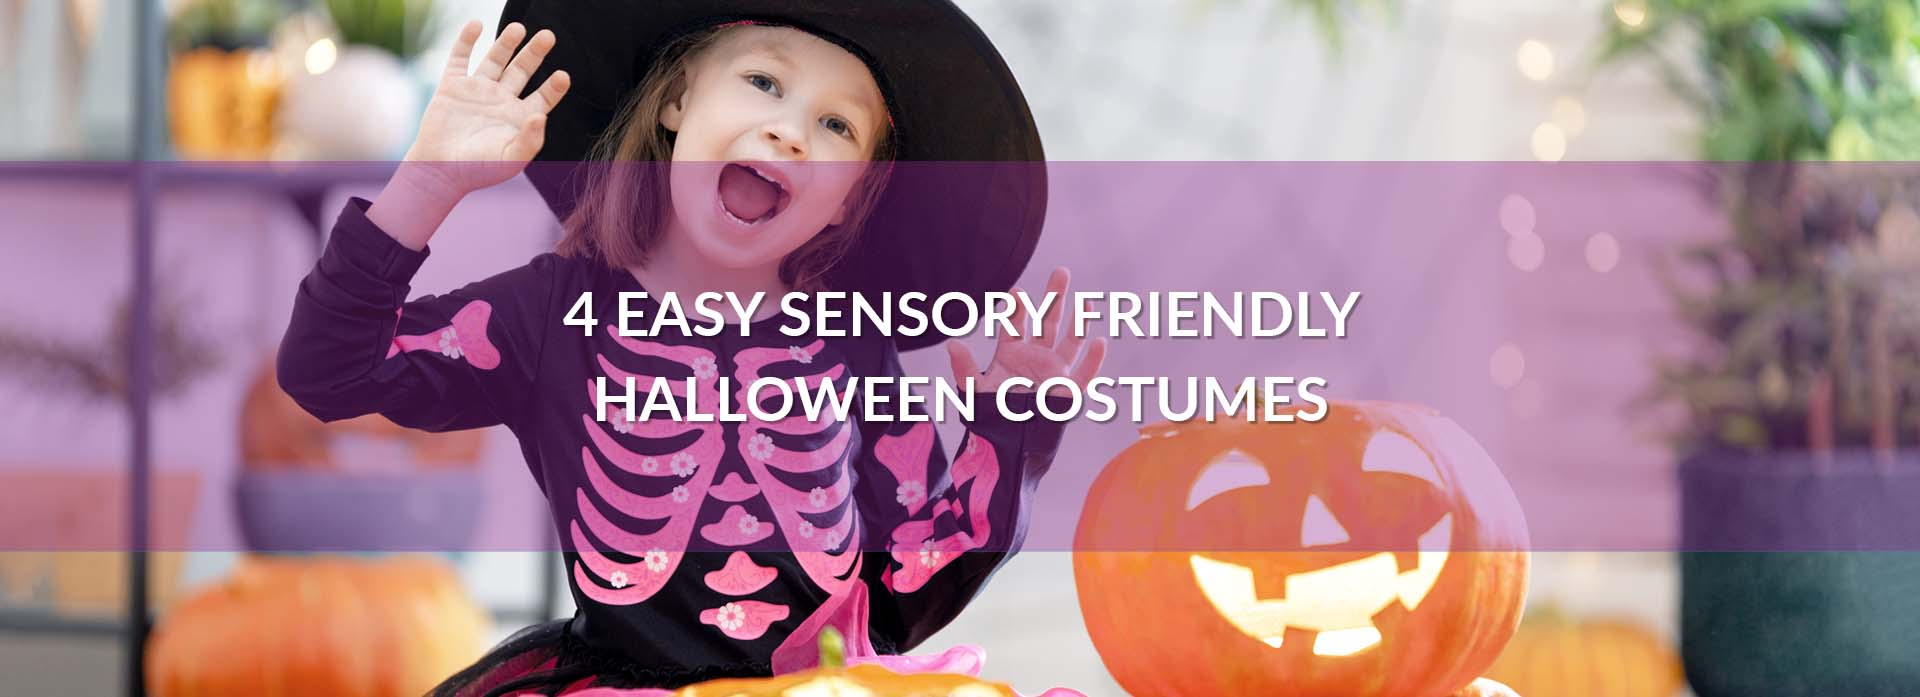 4 Easy Sensory Friendly Halloween Costumes